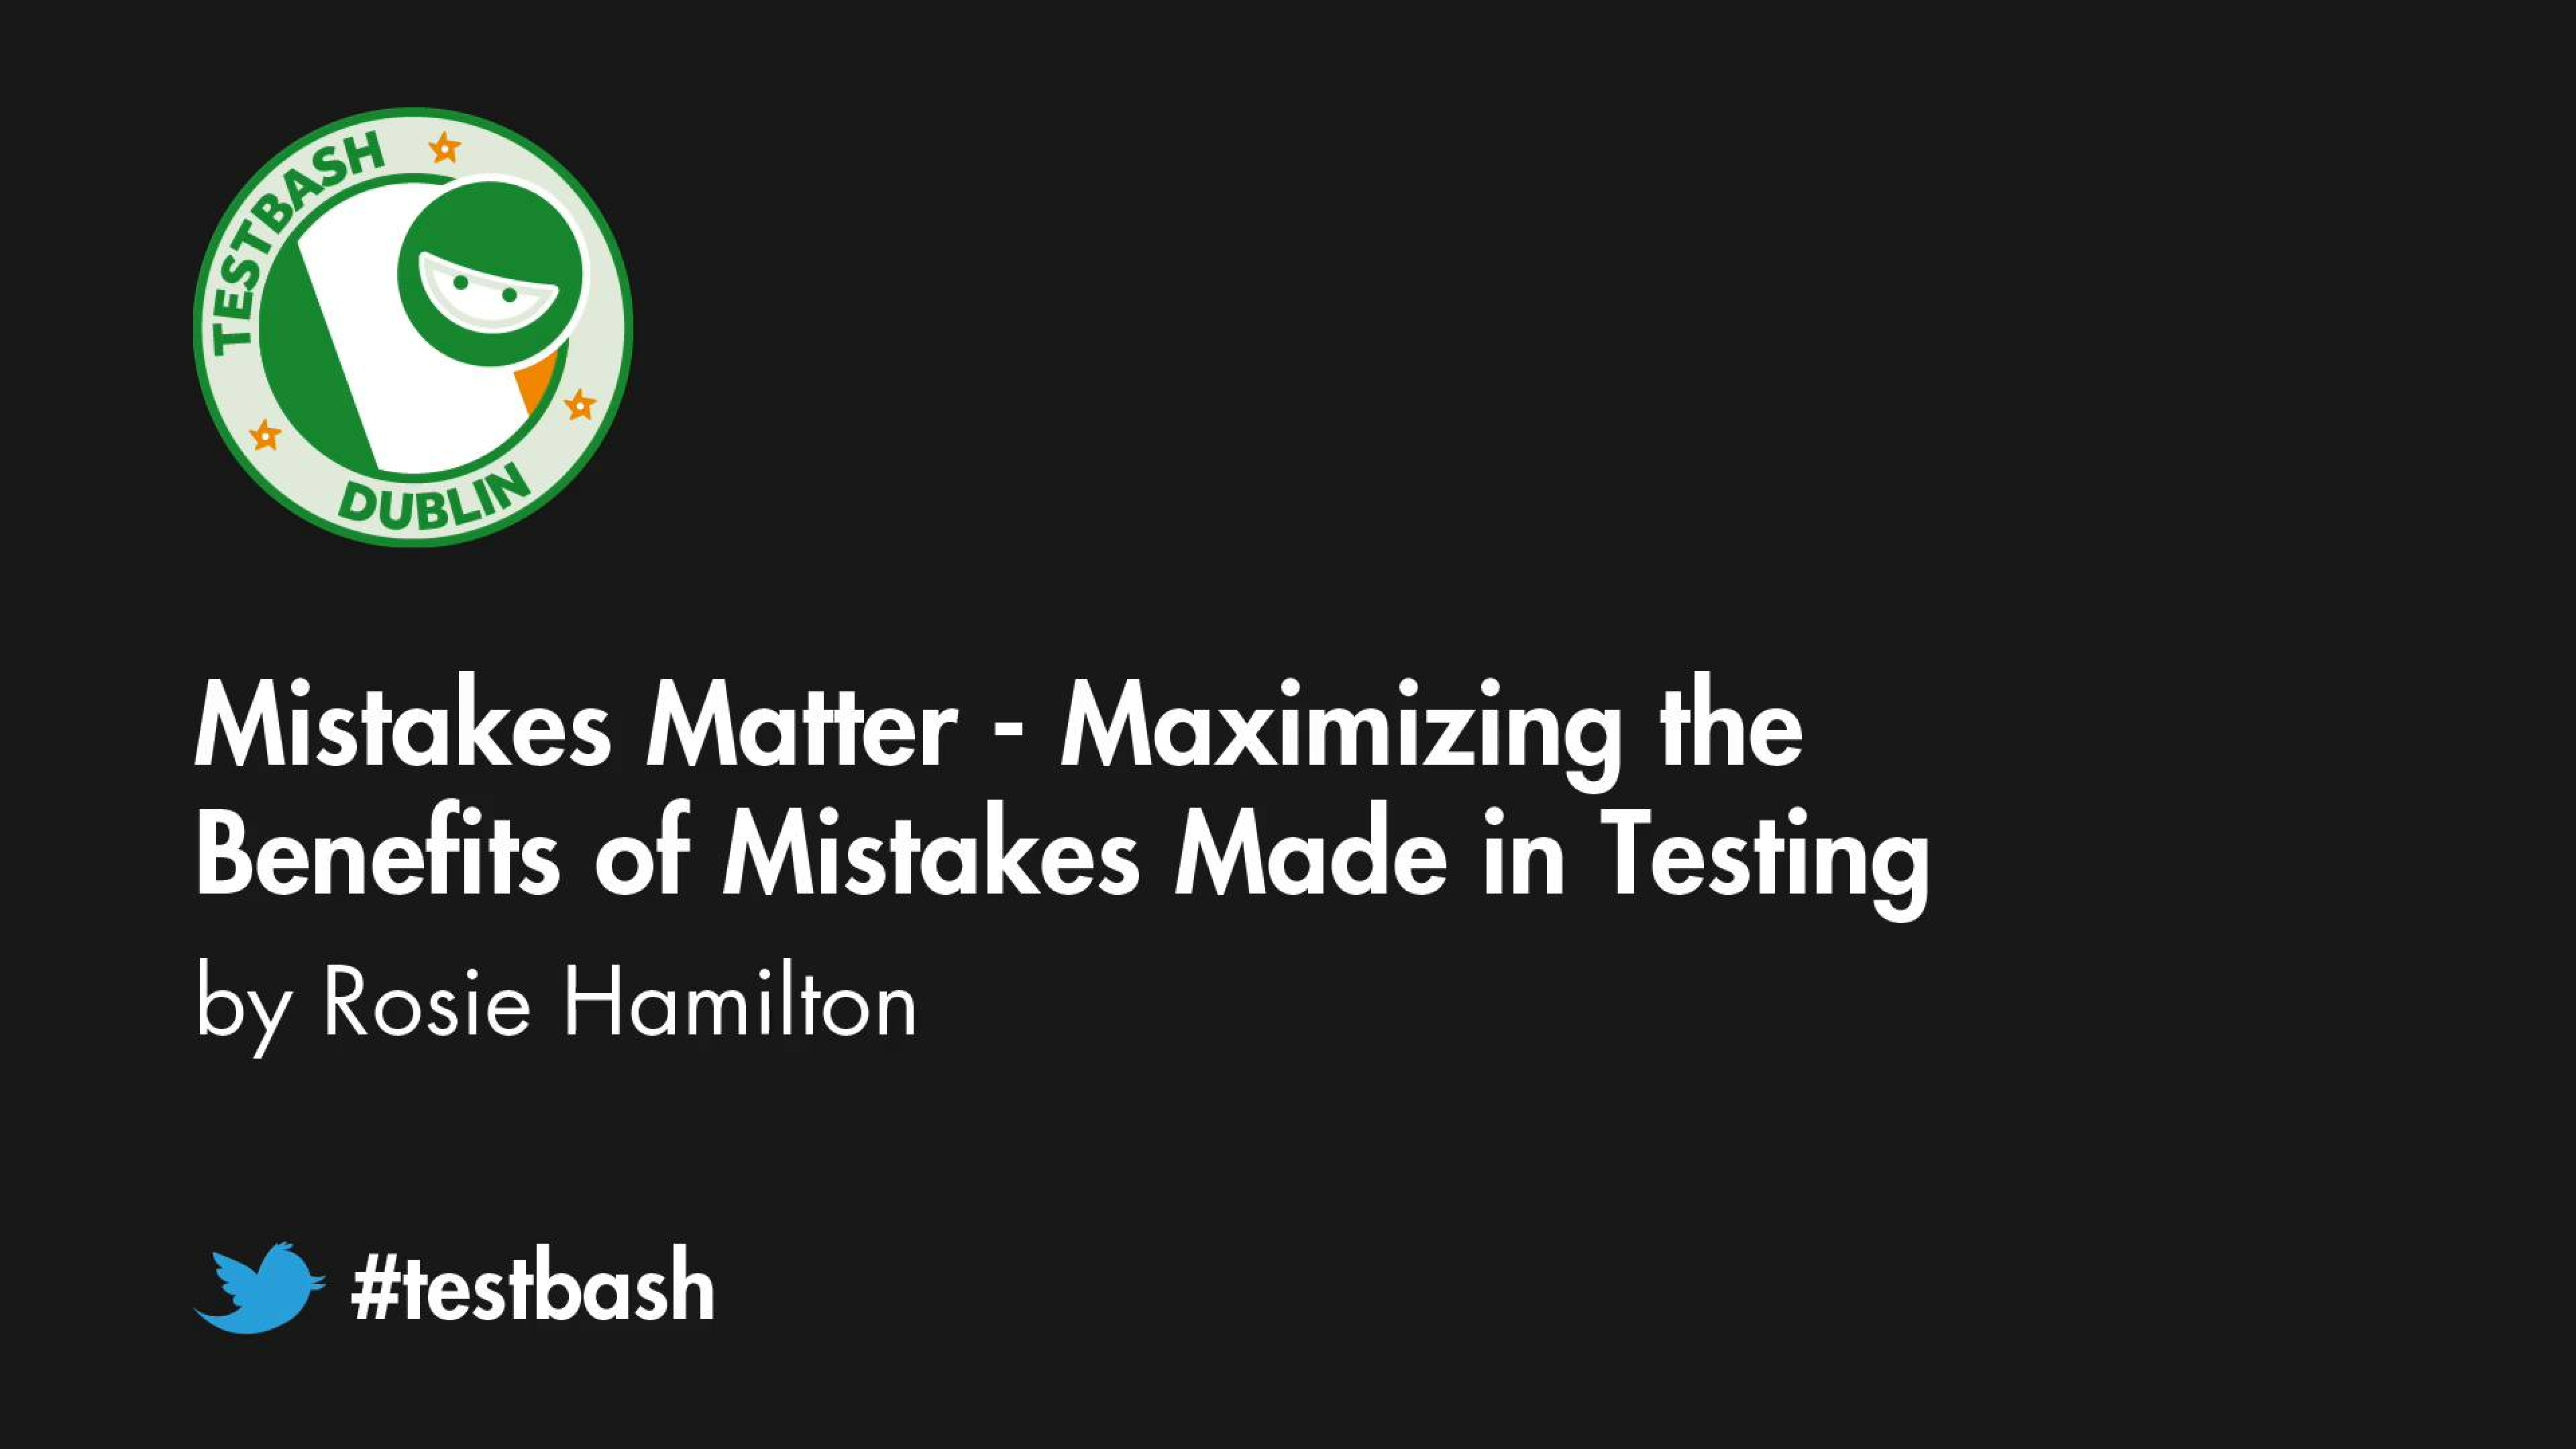 Mistakes Matter: Maximizing the Benefits of Mistakes Made in Testing - Rosie Hamilton